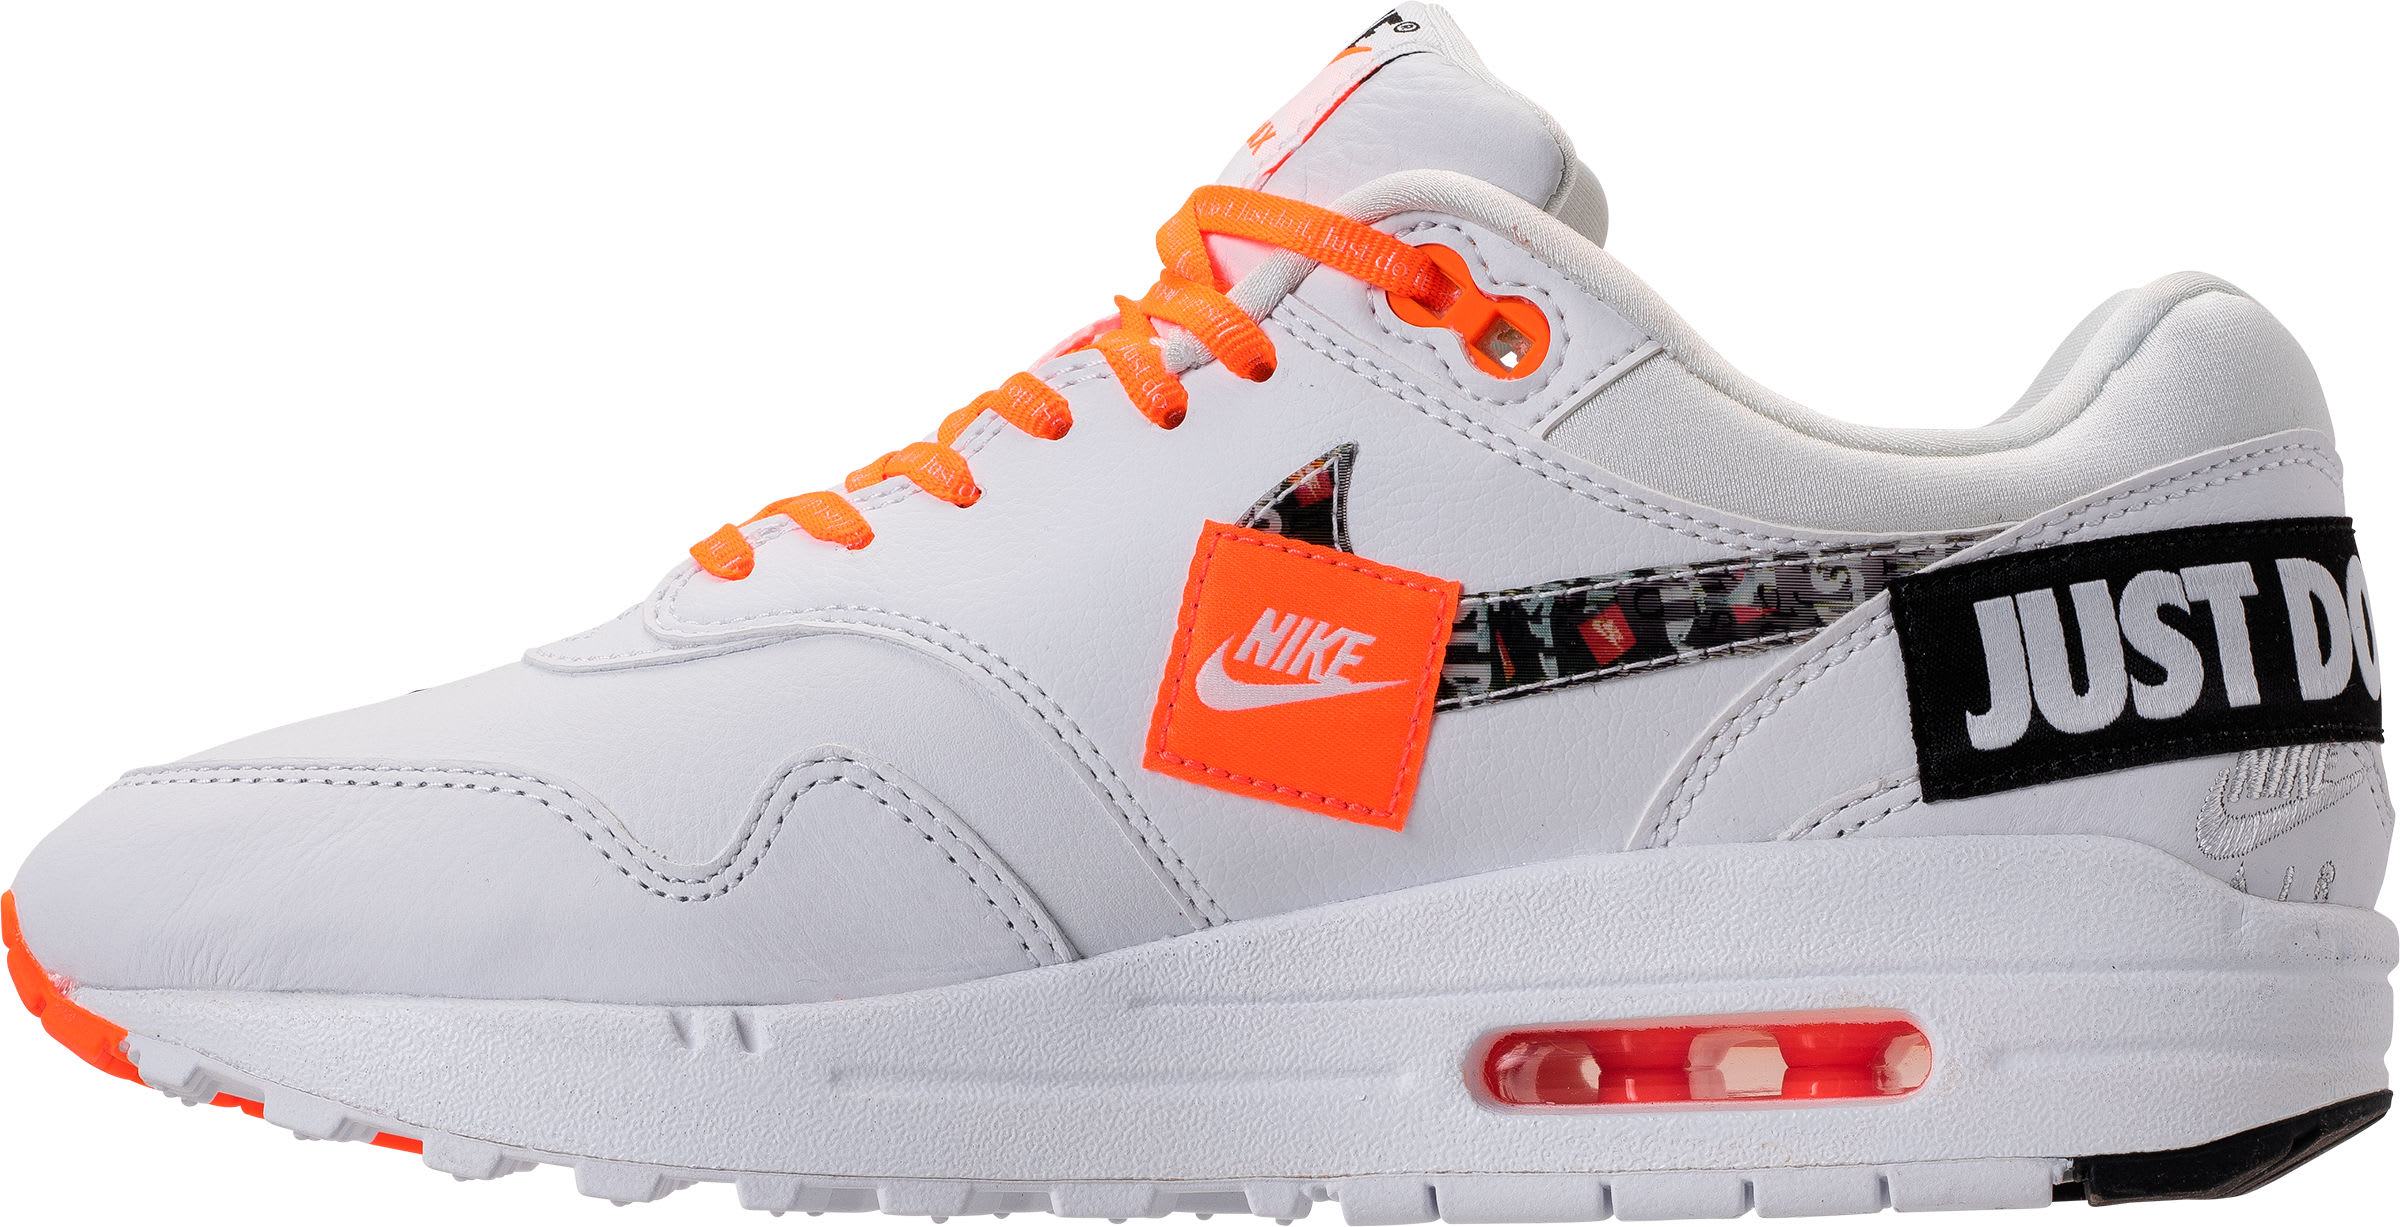 Nike Air Max 1 Just Do It White Release Date 917691-100 Medial